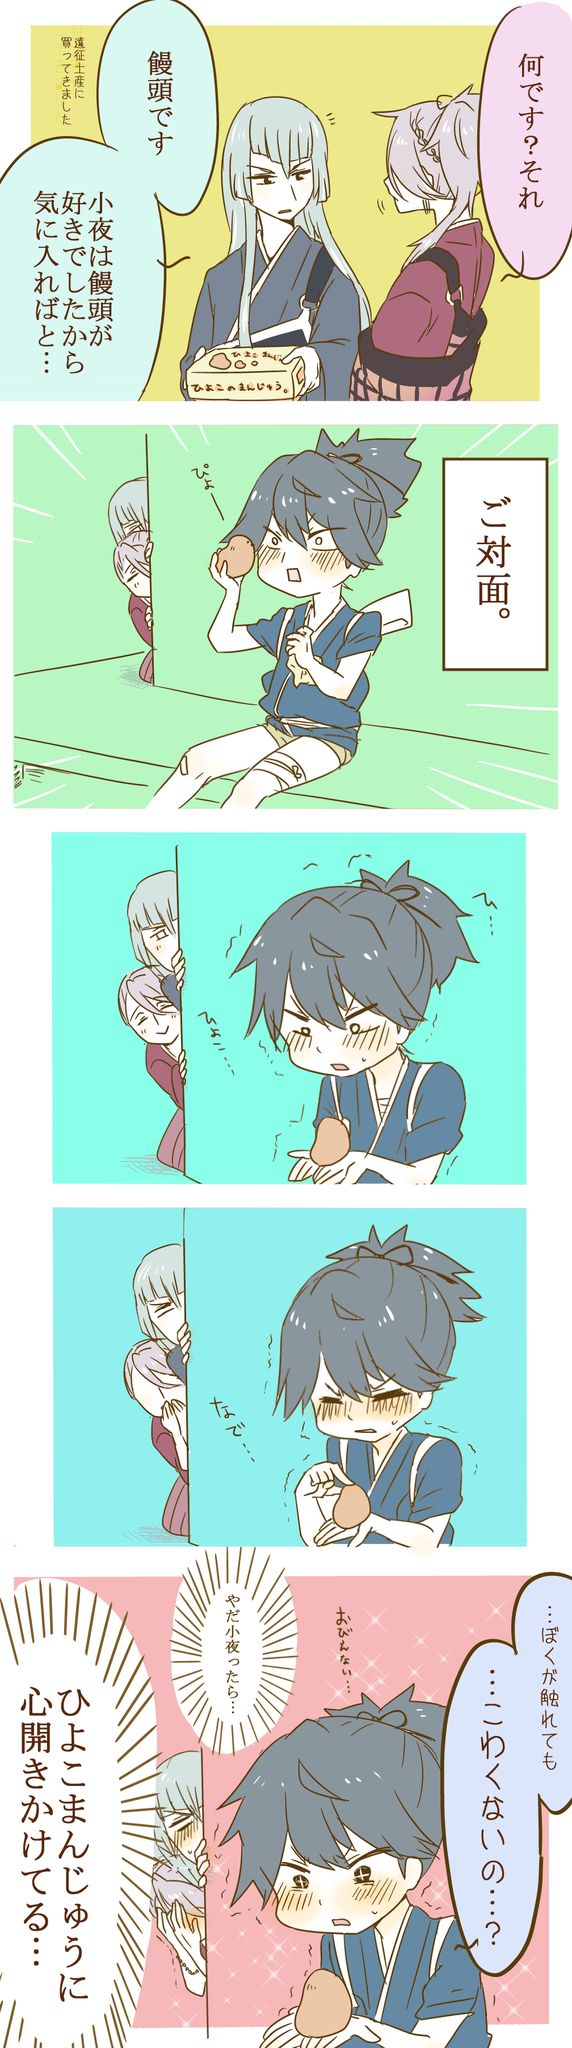 This is just so cute - Touken Ranbu